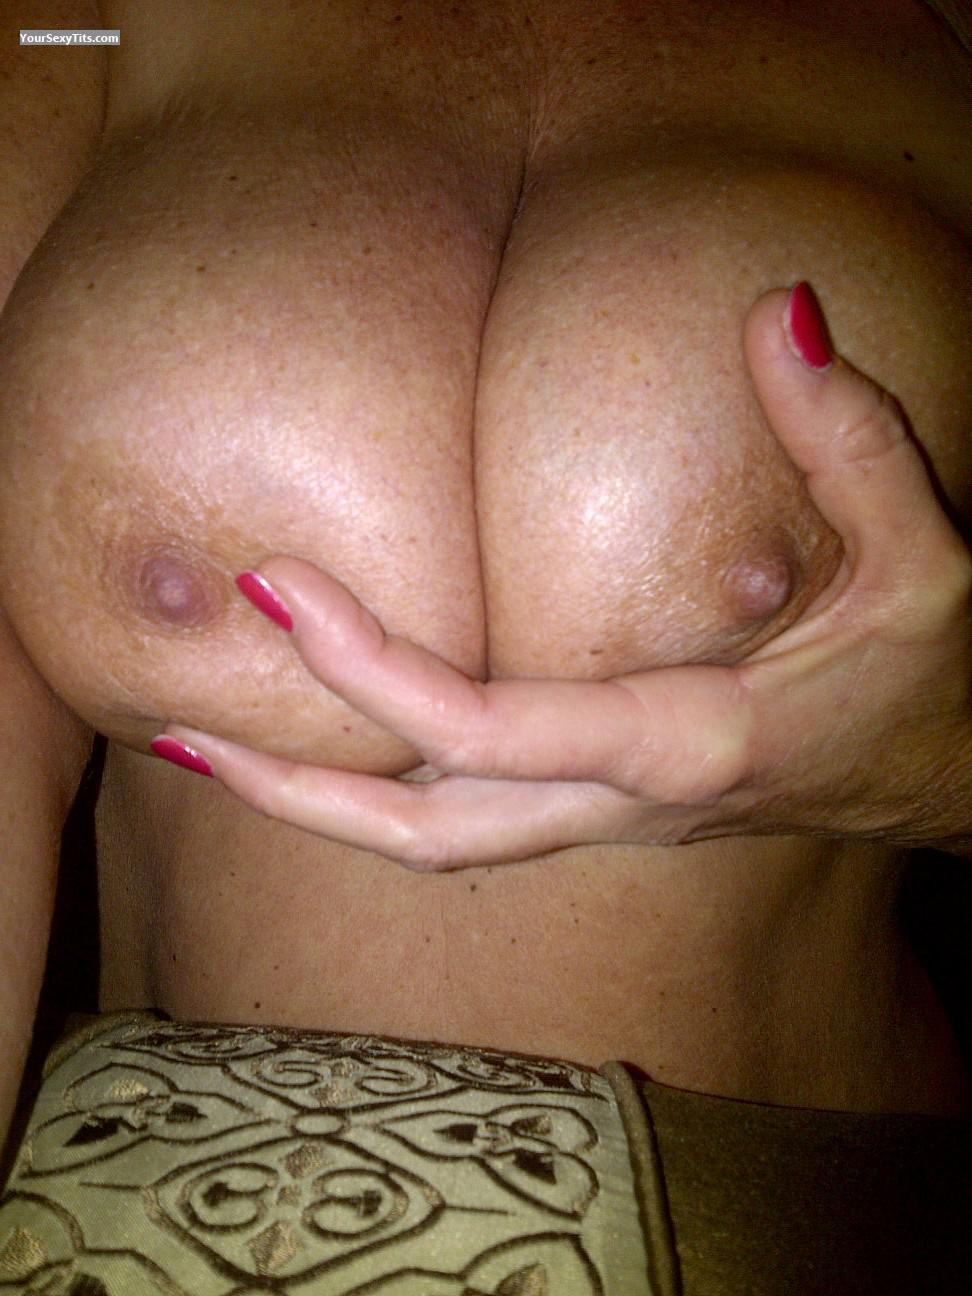 Tit Flash: My Very Big Tits (Selfie) - Guess Who??? from United States